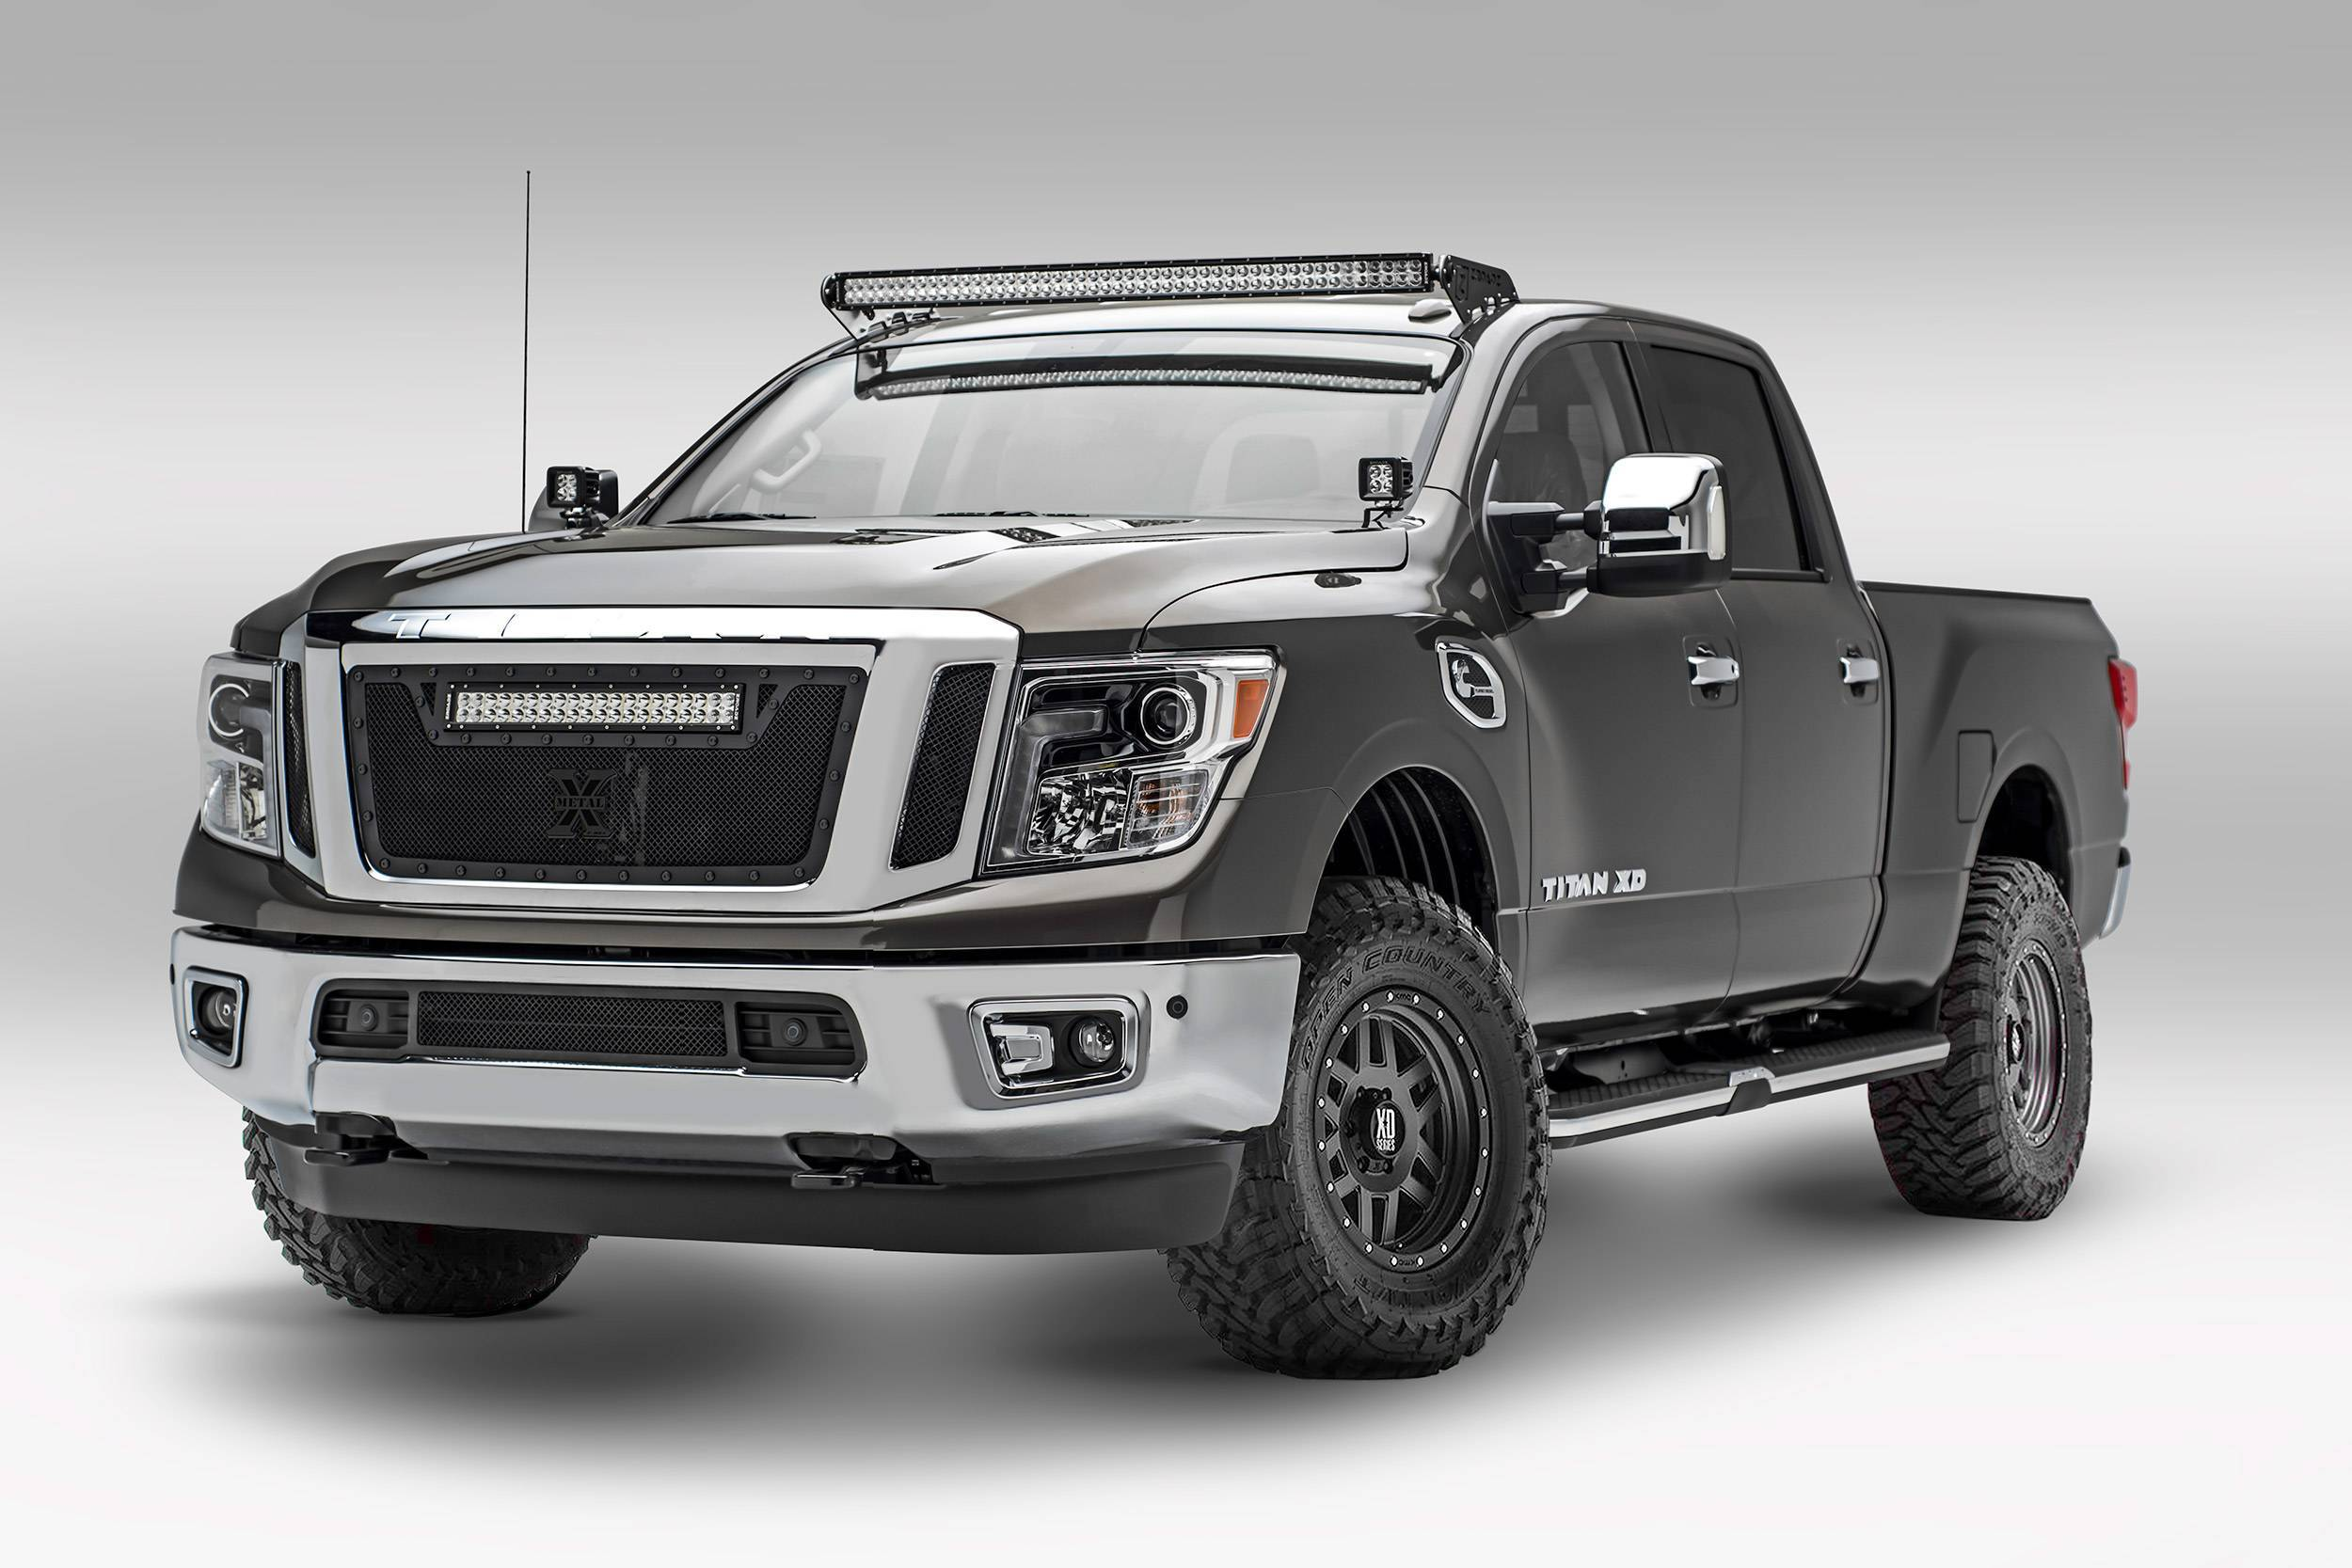 ZROADZ - 2016-2019 Nissan Titan Front Roof LED Kit with (1) 50 Inch LED Curved Double Row Light Bar - PN #Z337581-KIT-C